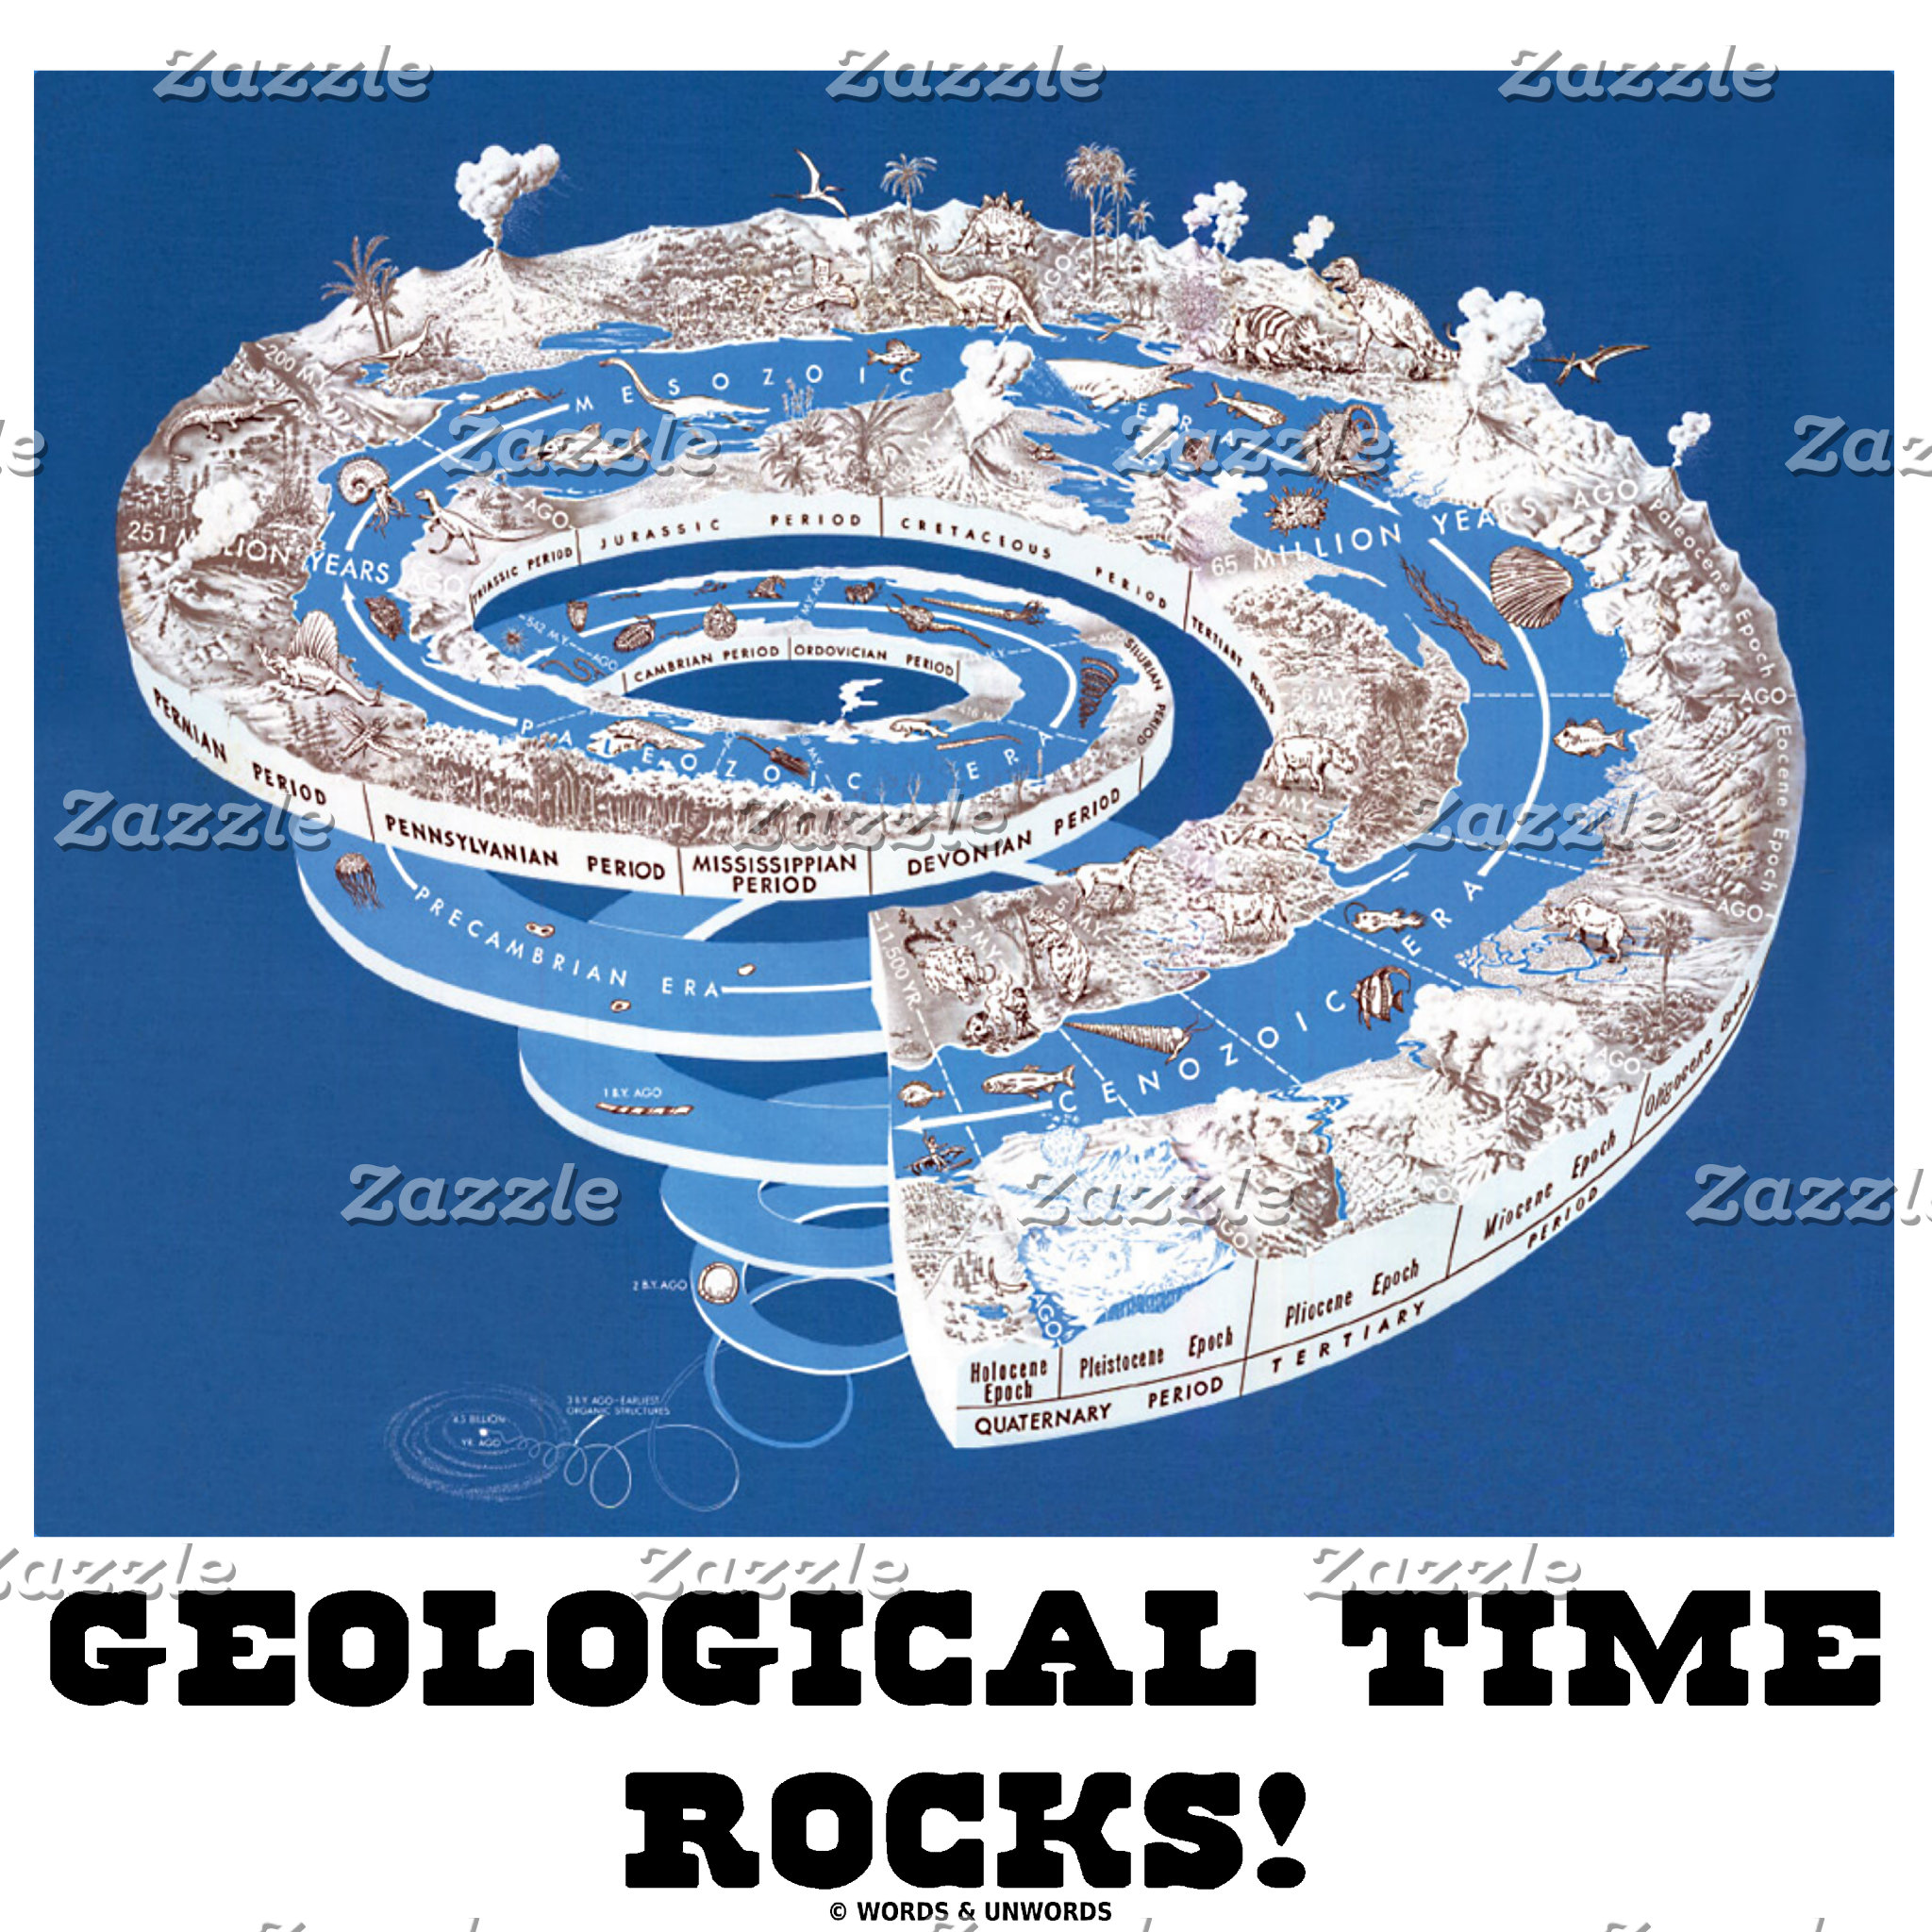 Earth's Timeline (Geological Age)